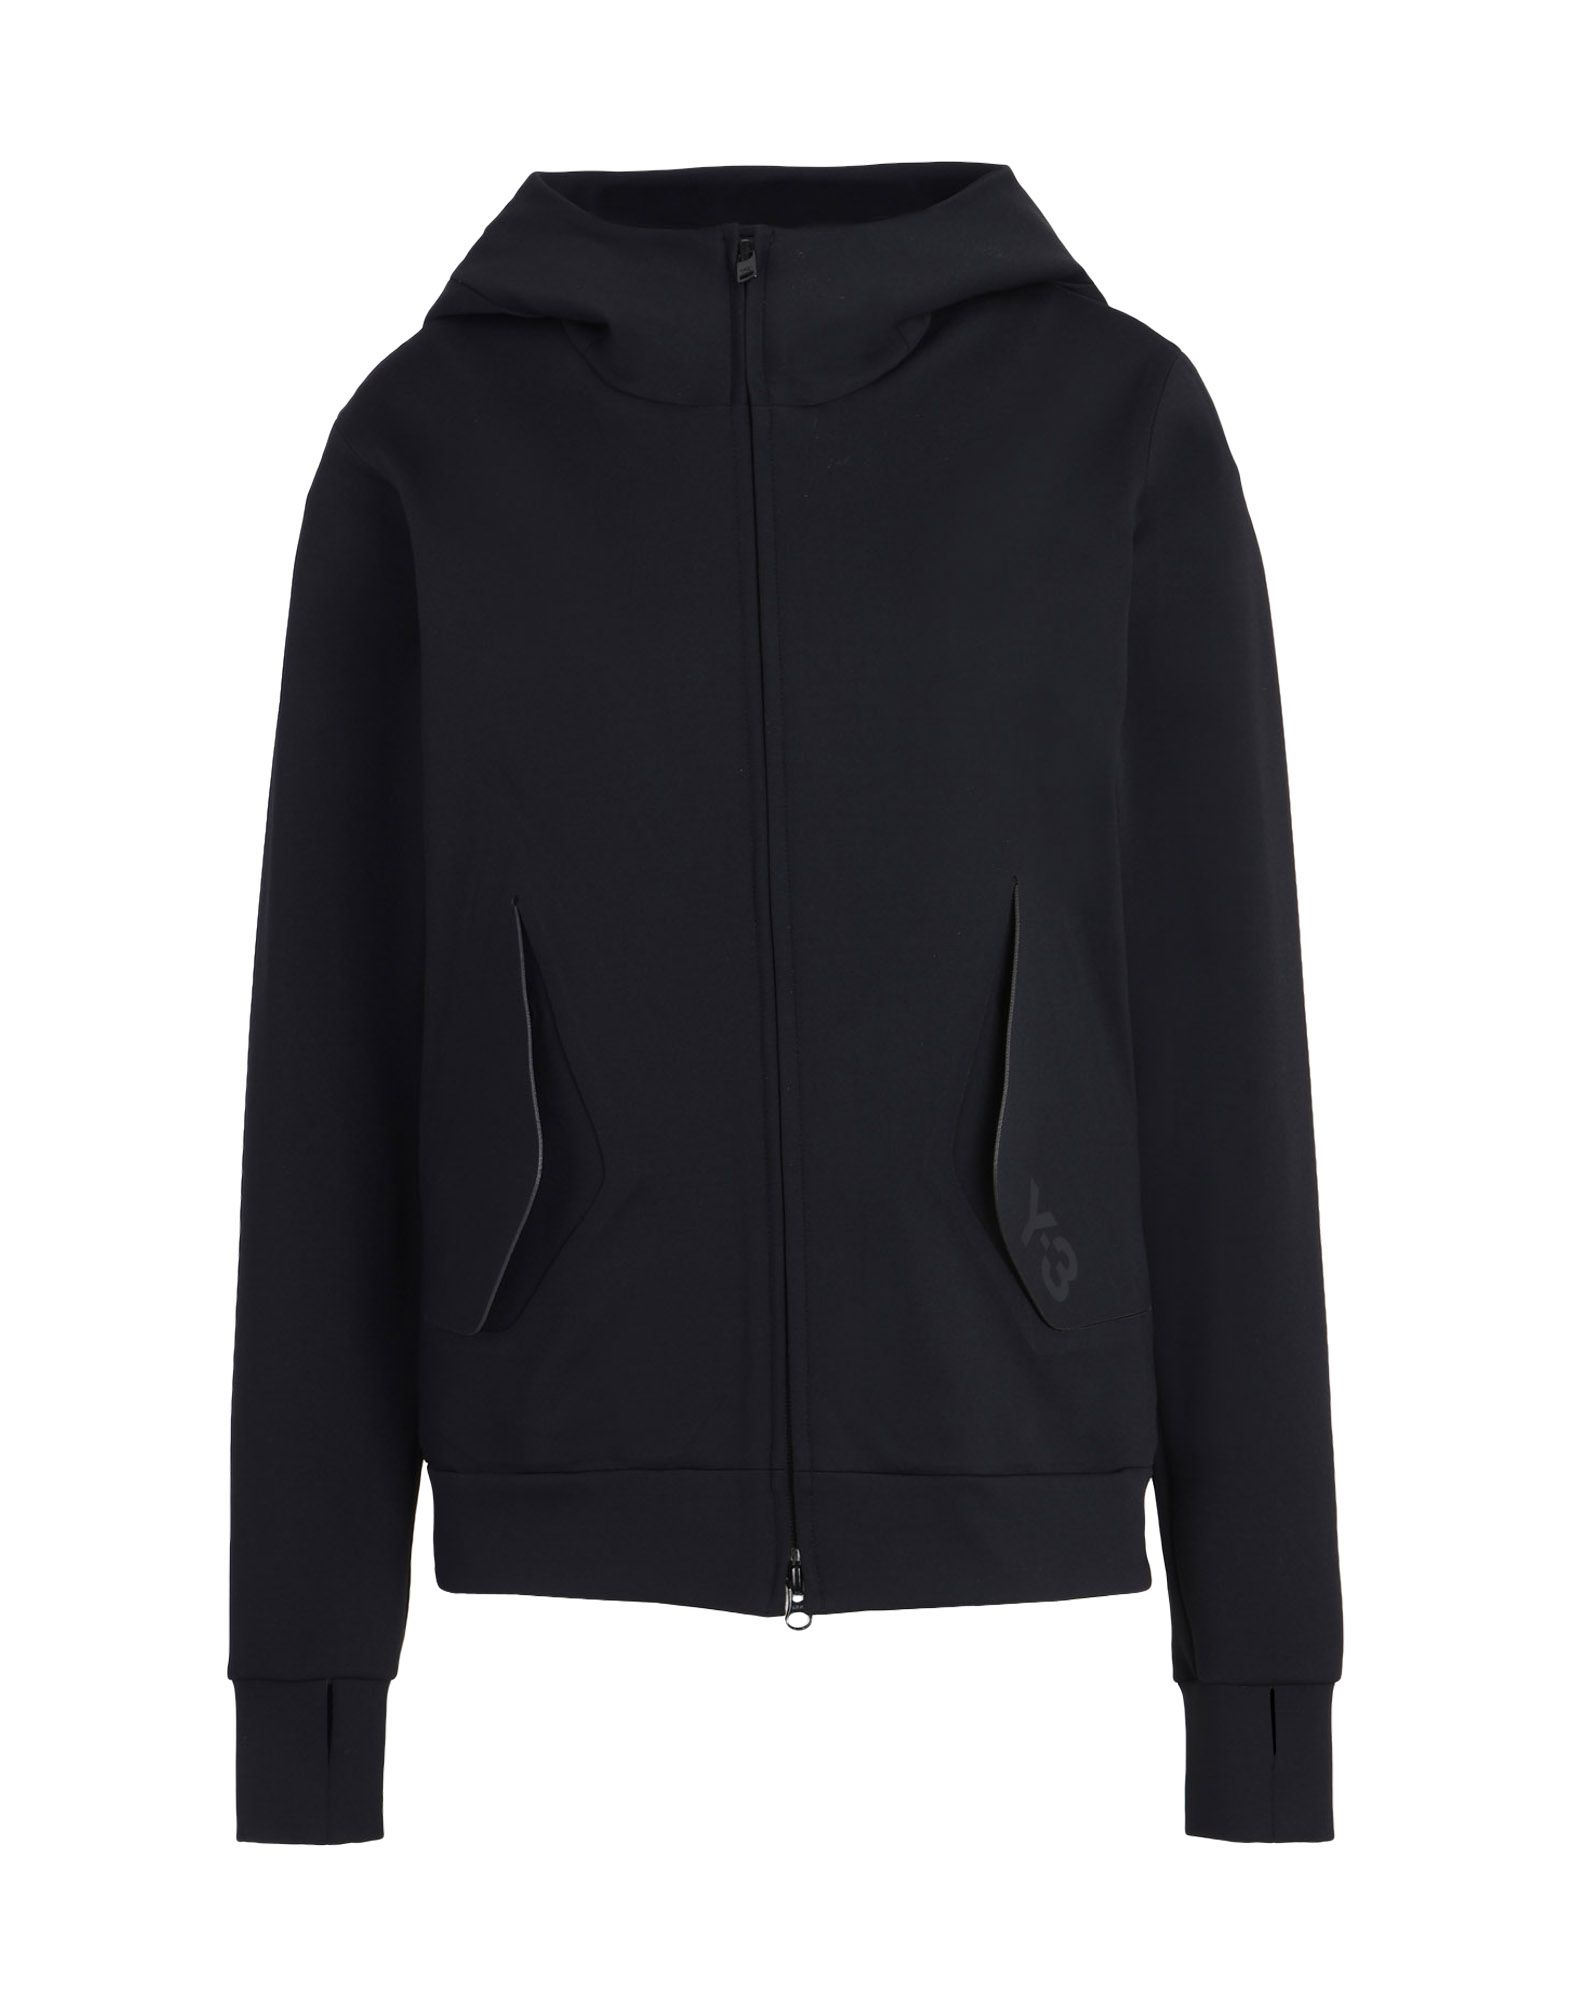 Y 3 LUX HOODED JACKET Jackets for Women | Adidas Y-3 Official Store